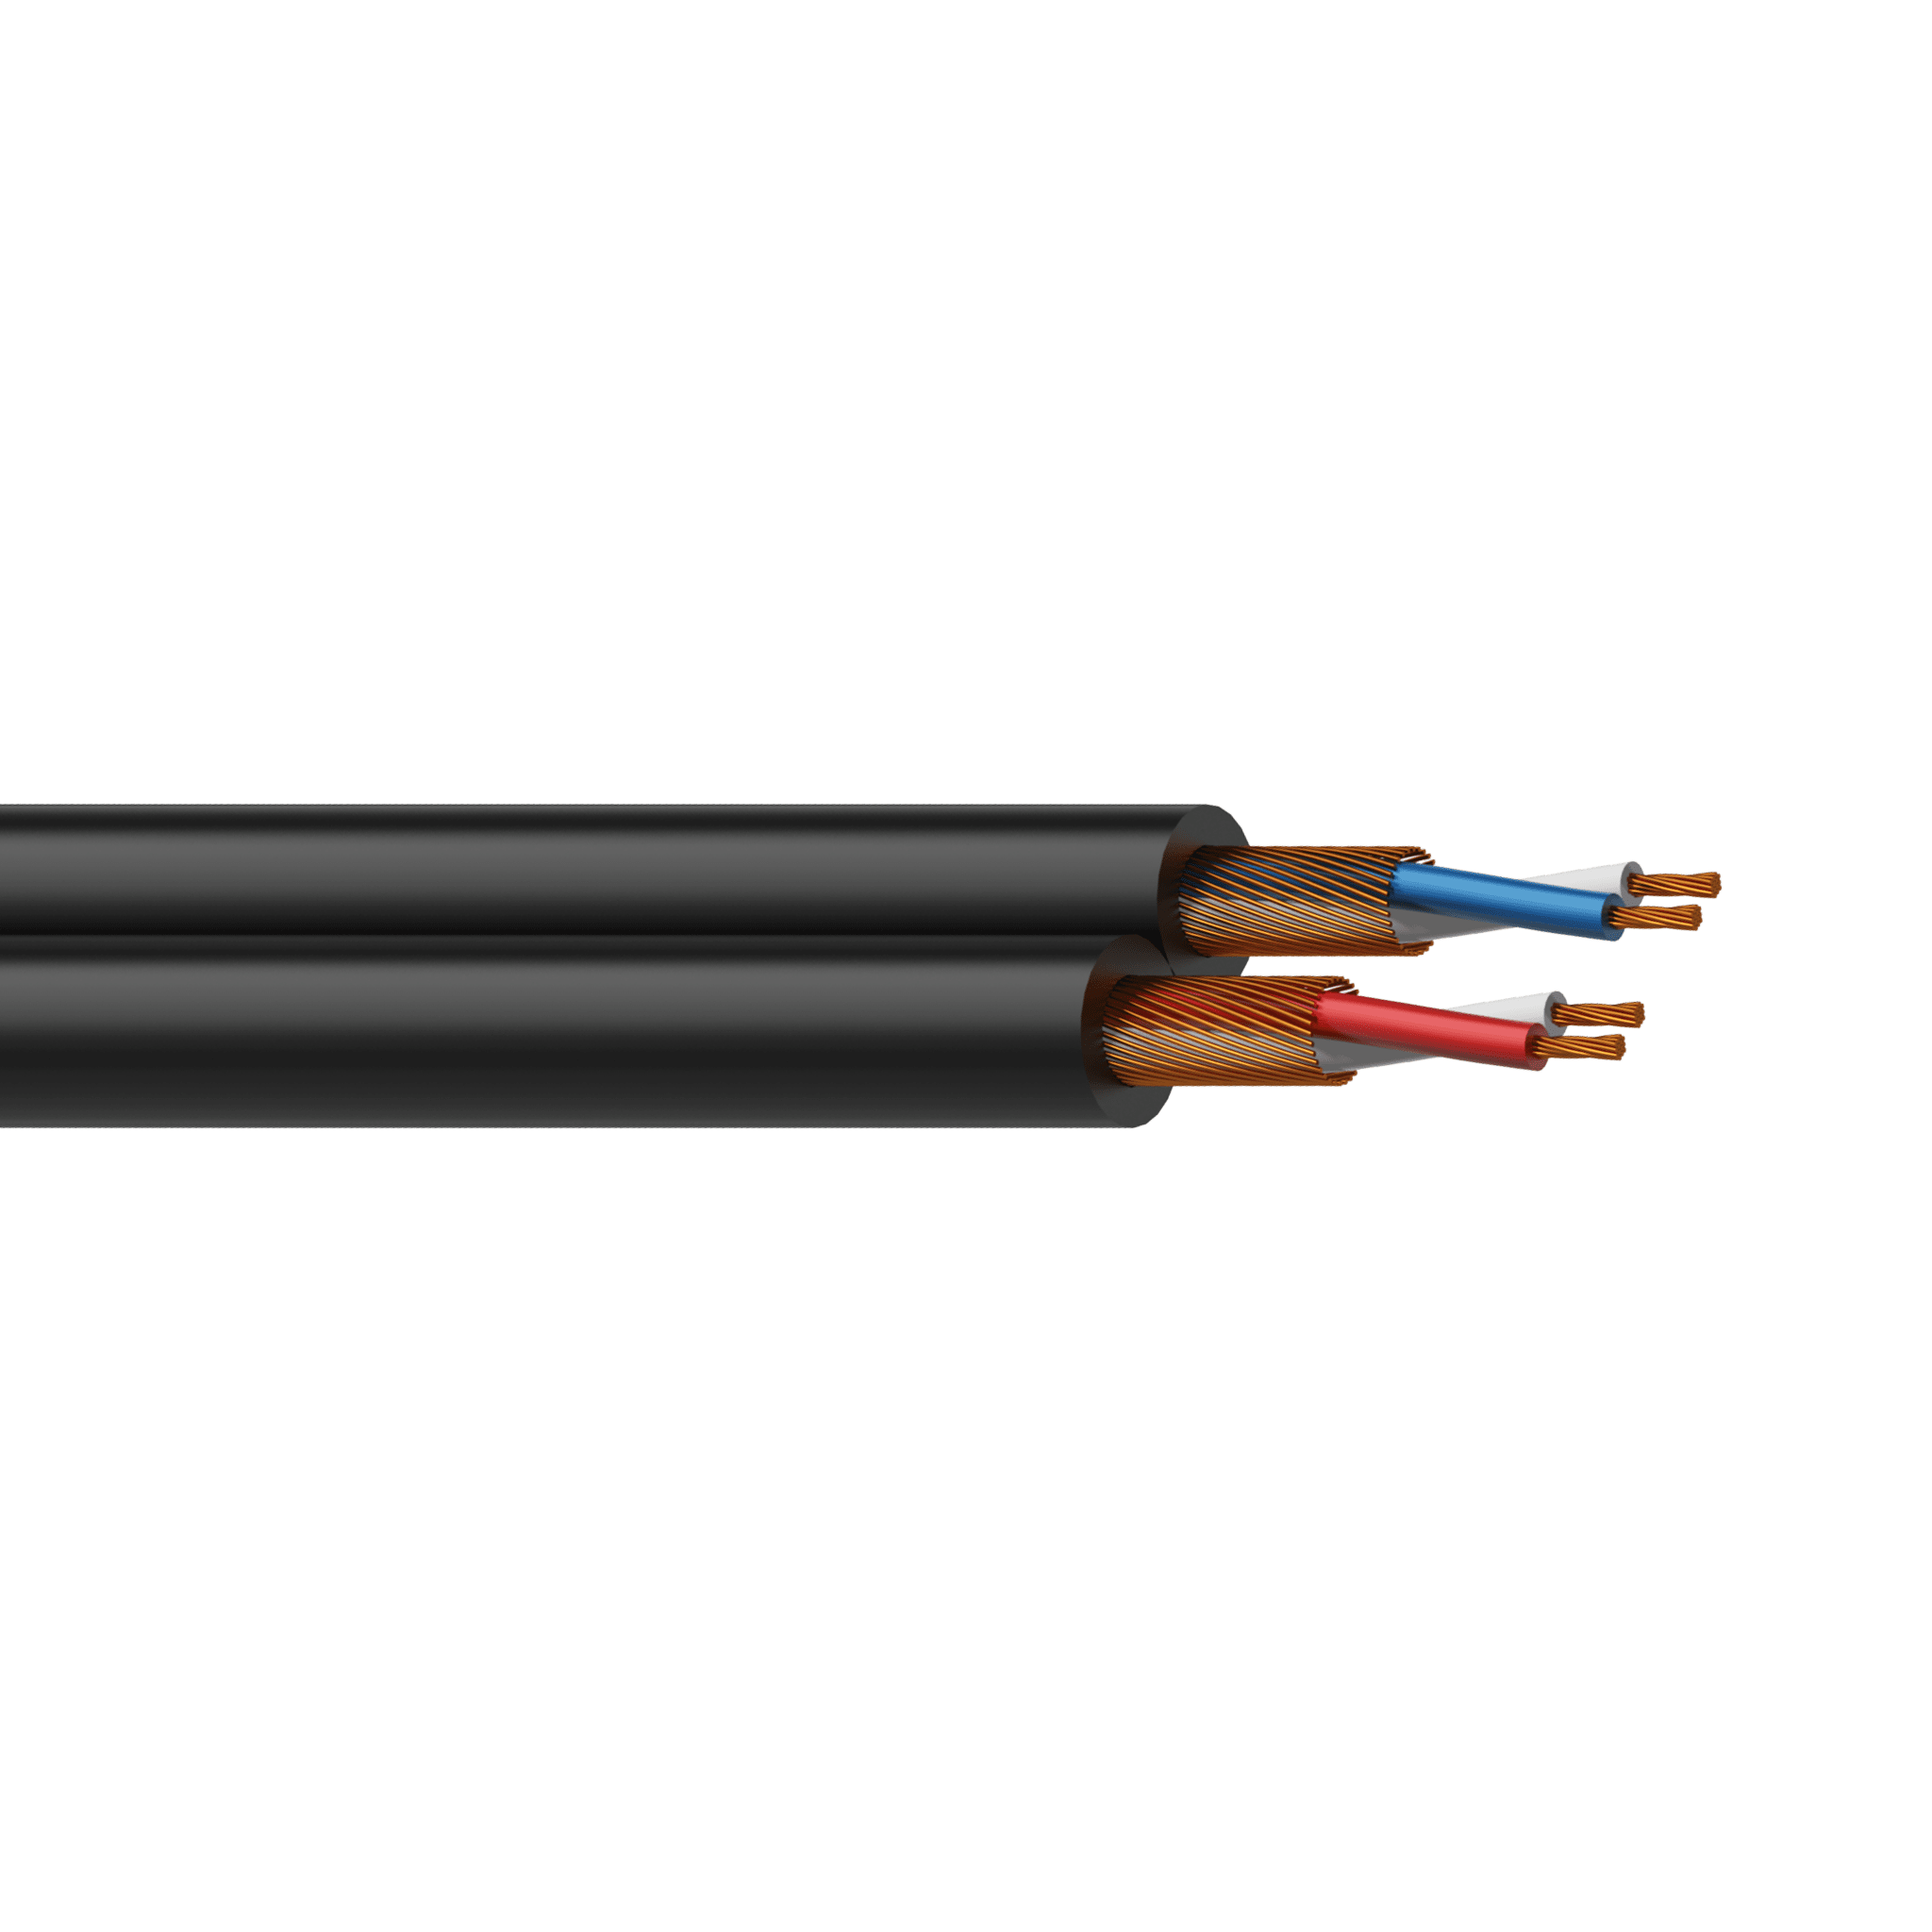 SIG58 - Balanced signal cable - flex 4 x 0.16 mm² - 25 AWG